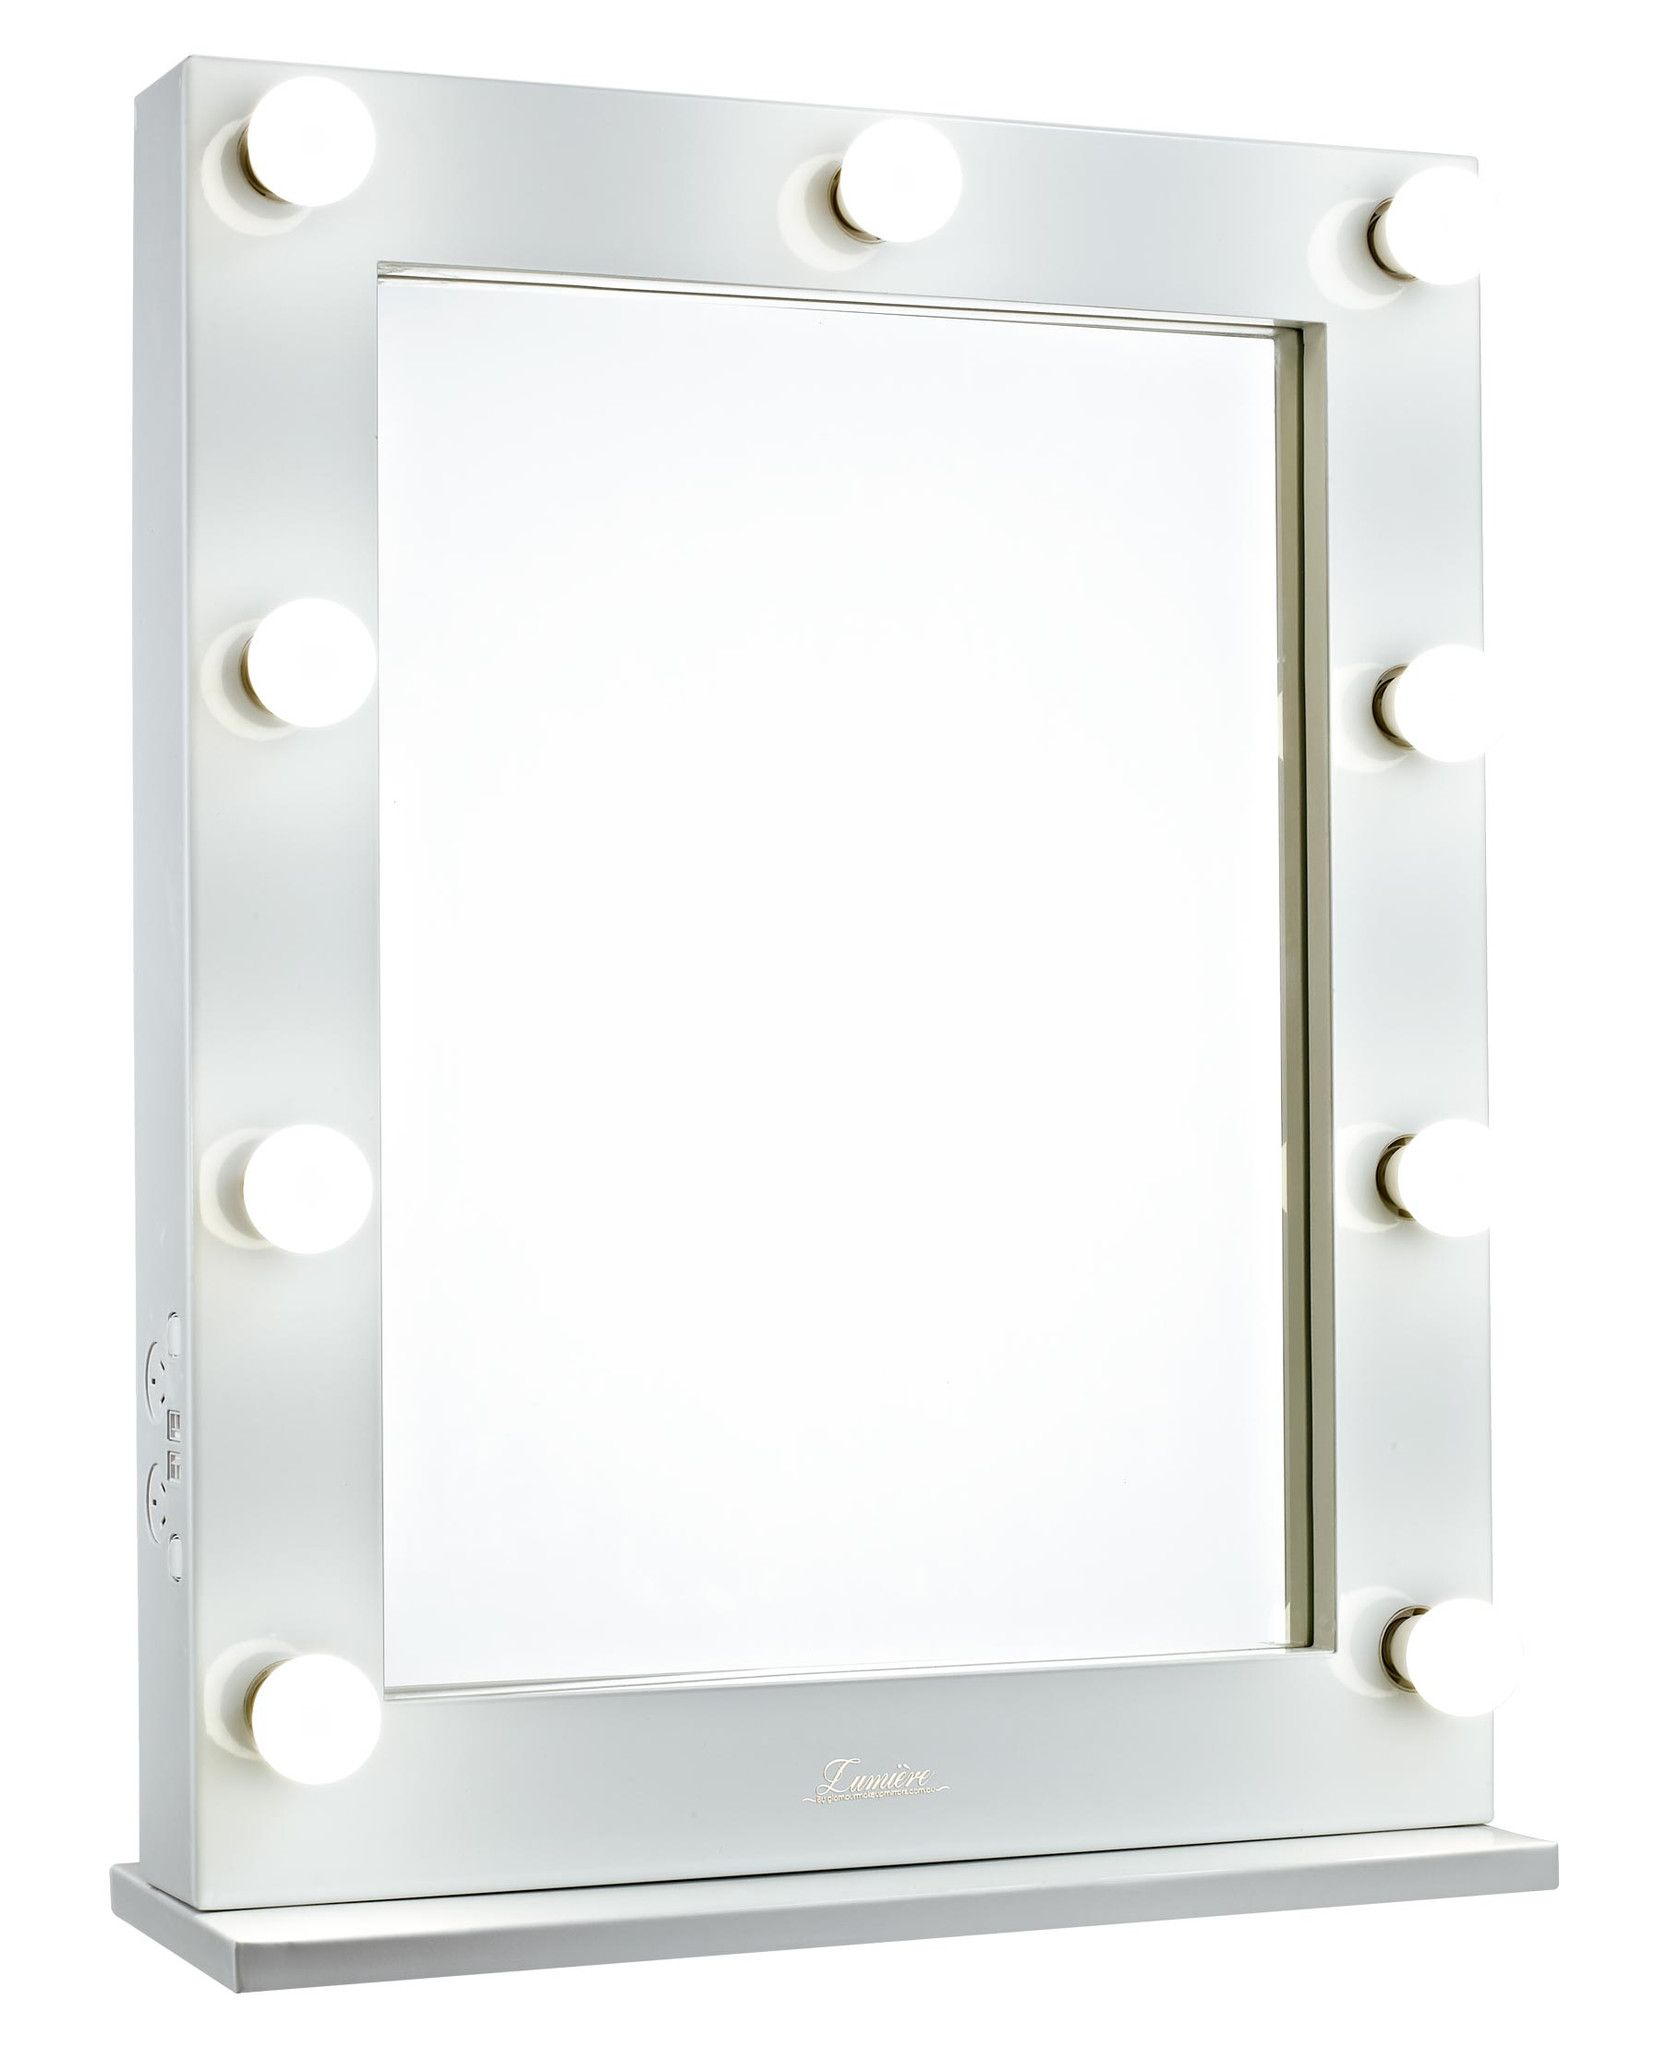 vanity mirror with lights australia. Black Bedroom Furniture Sets. Home Design Ideas